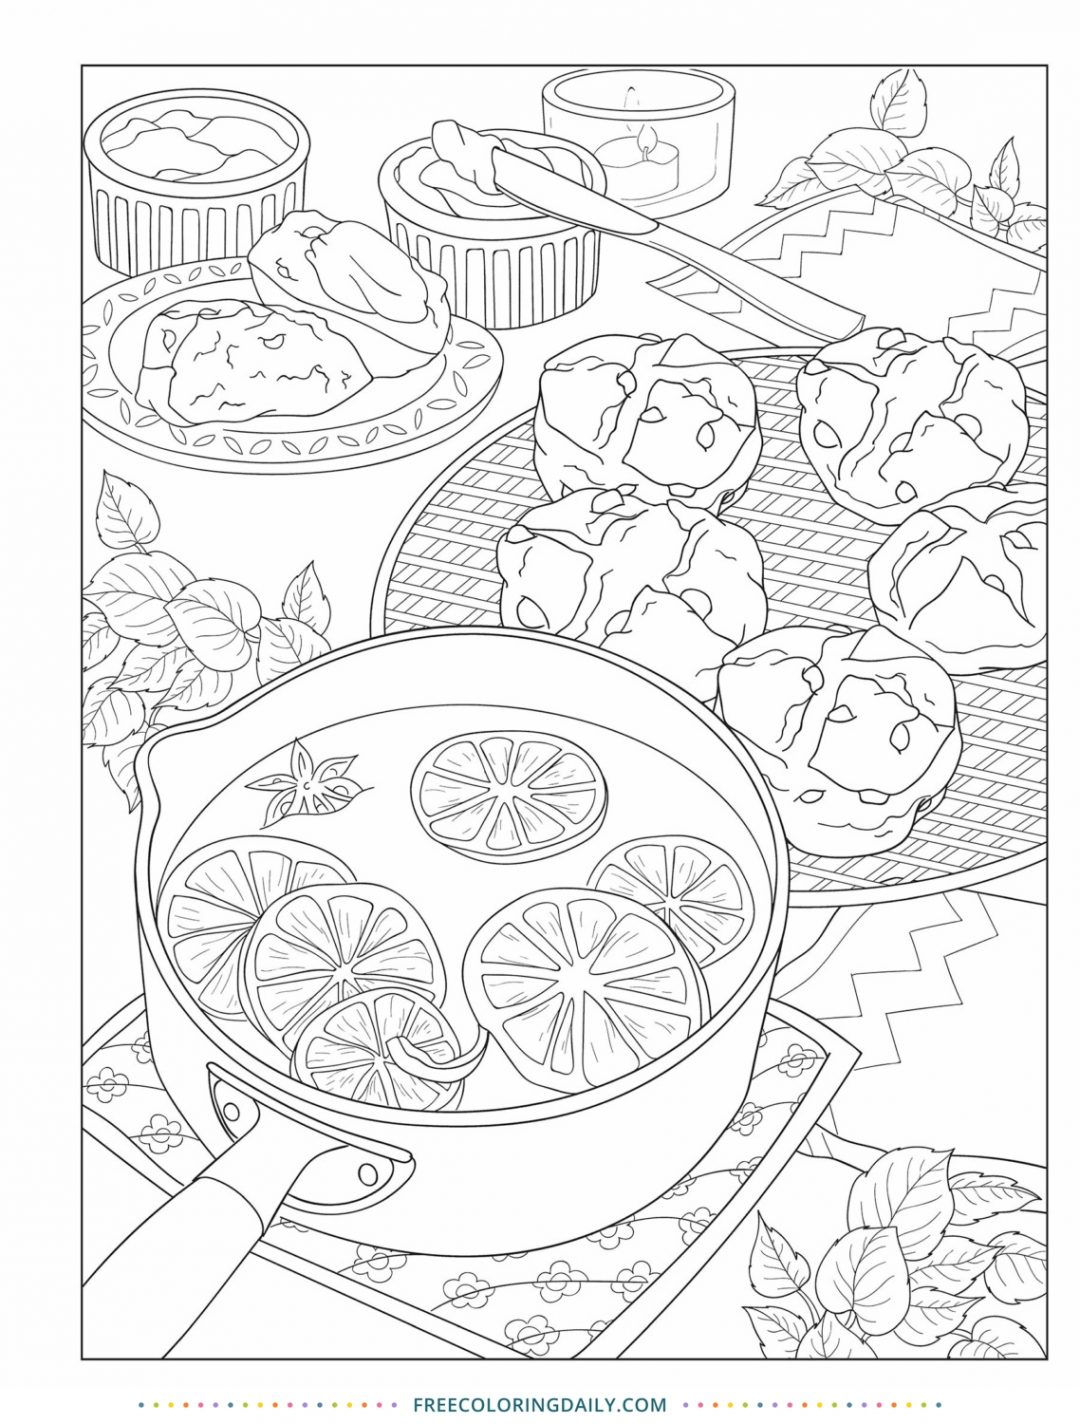 Free Baking Time Coloring Page